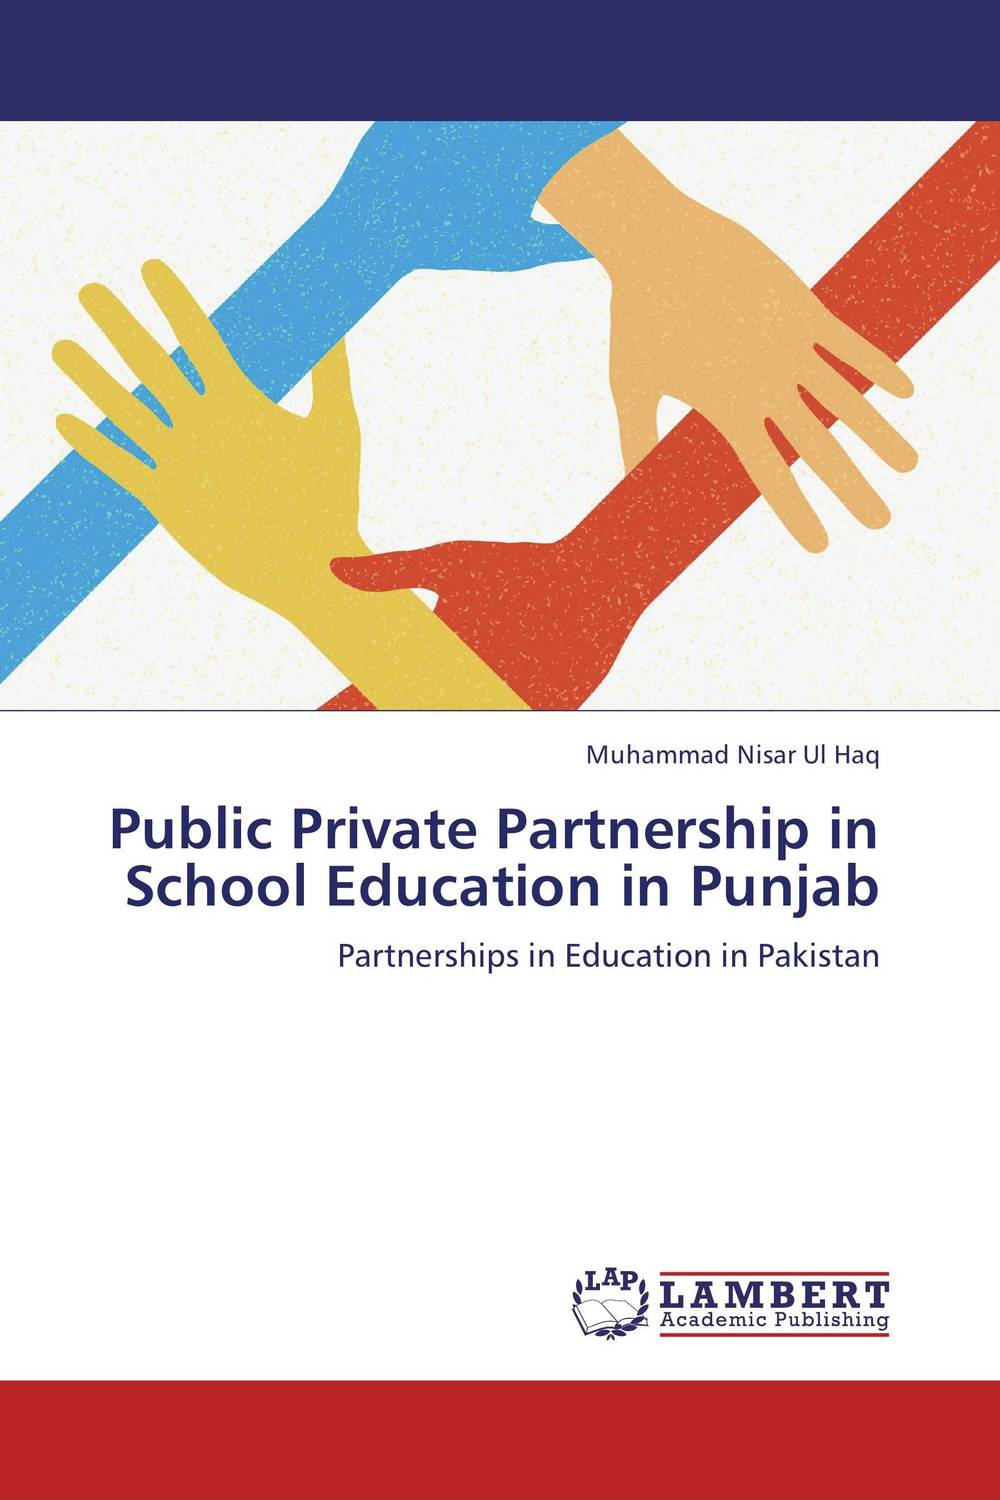 Фото Public Private Partnership in School Education in Punjab cervical cancer in amhara region in ethiopia